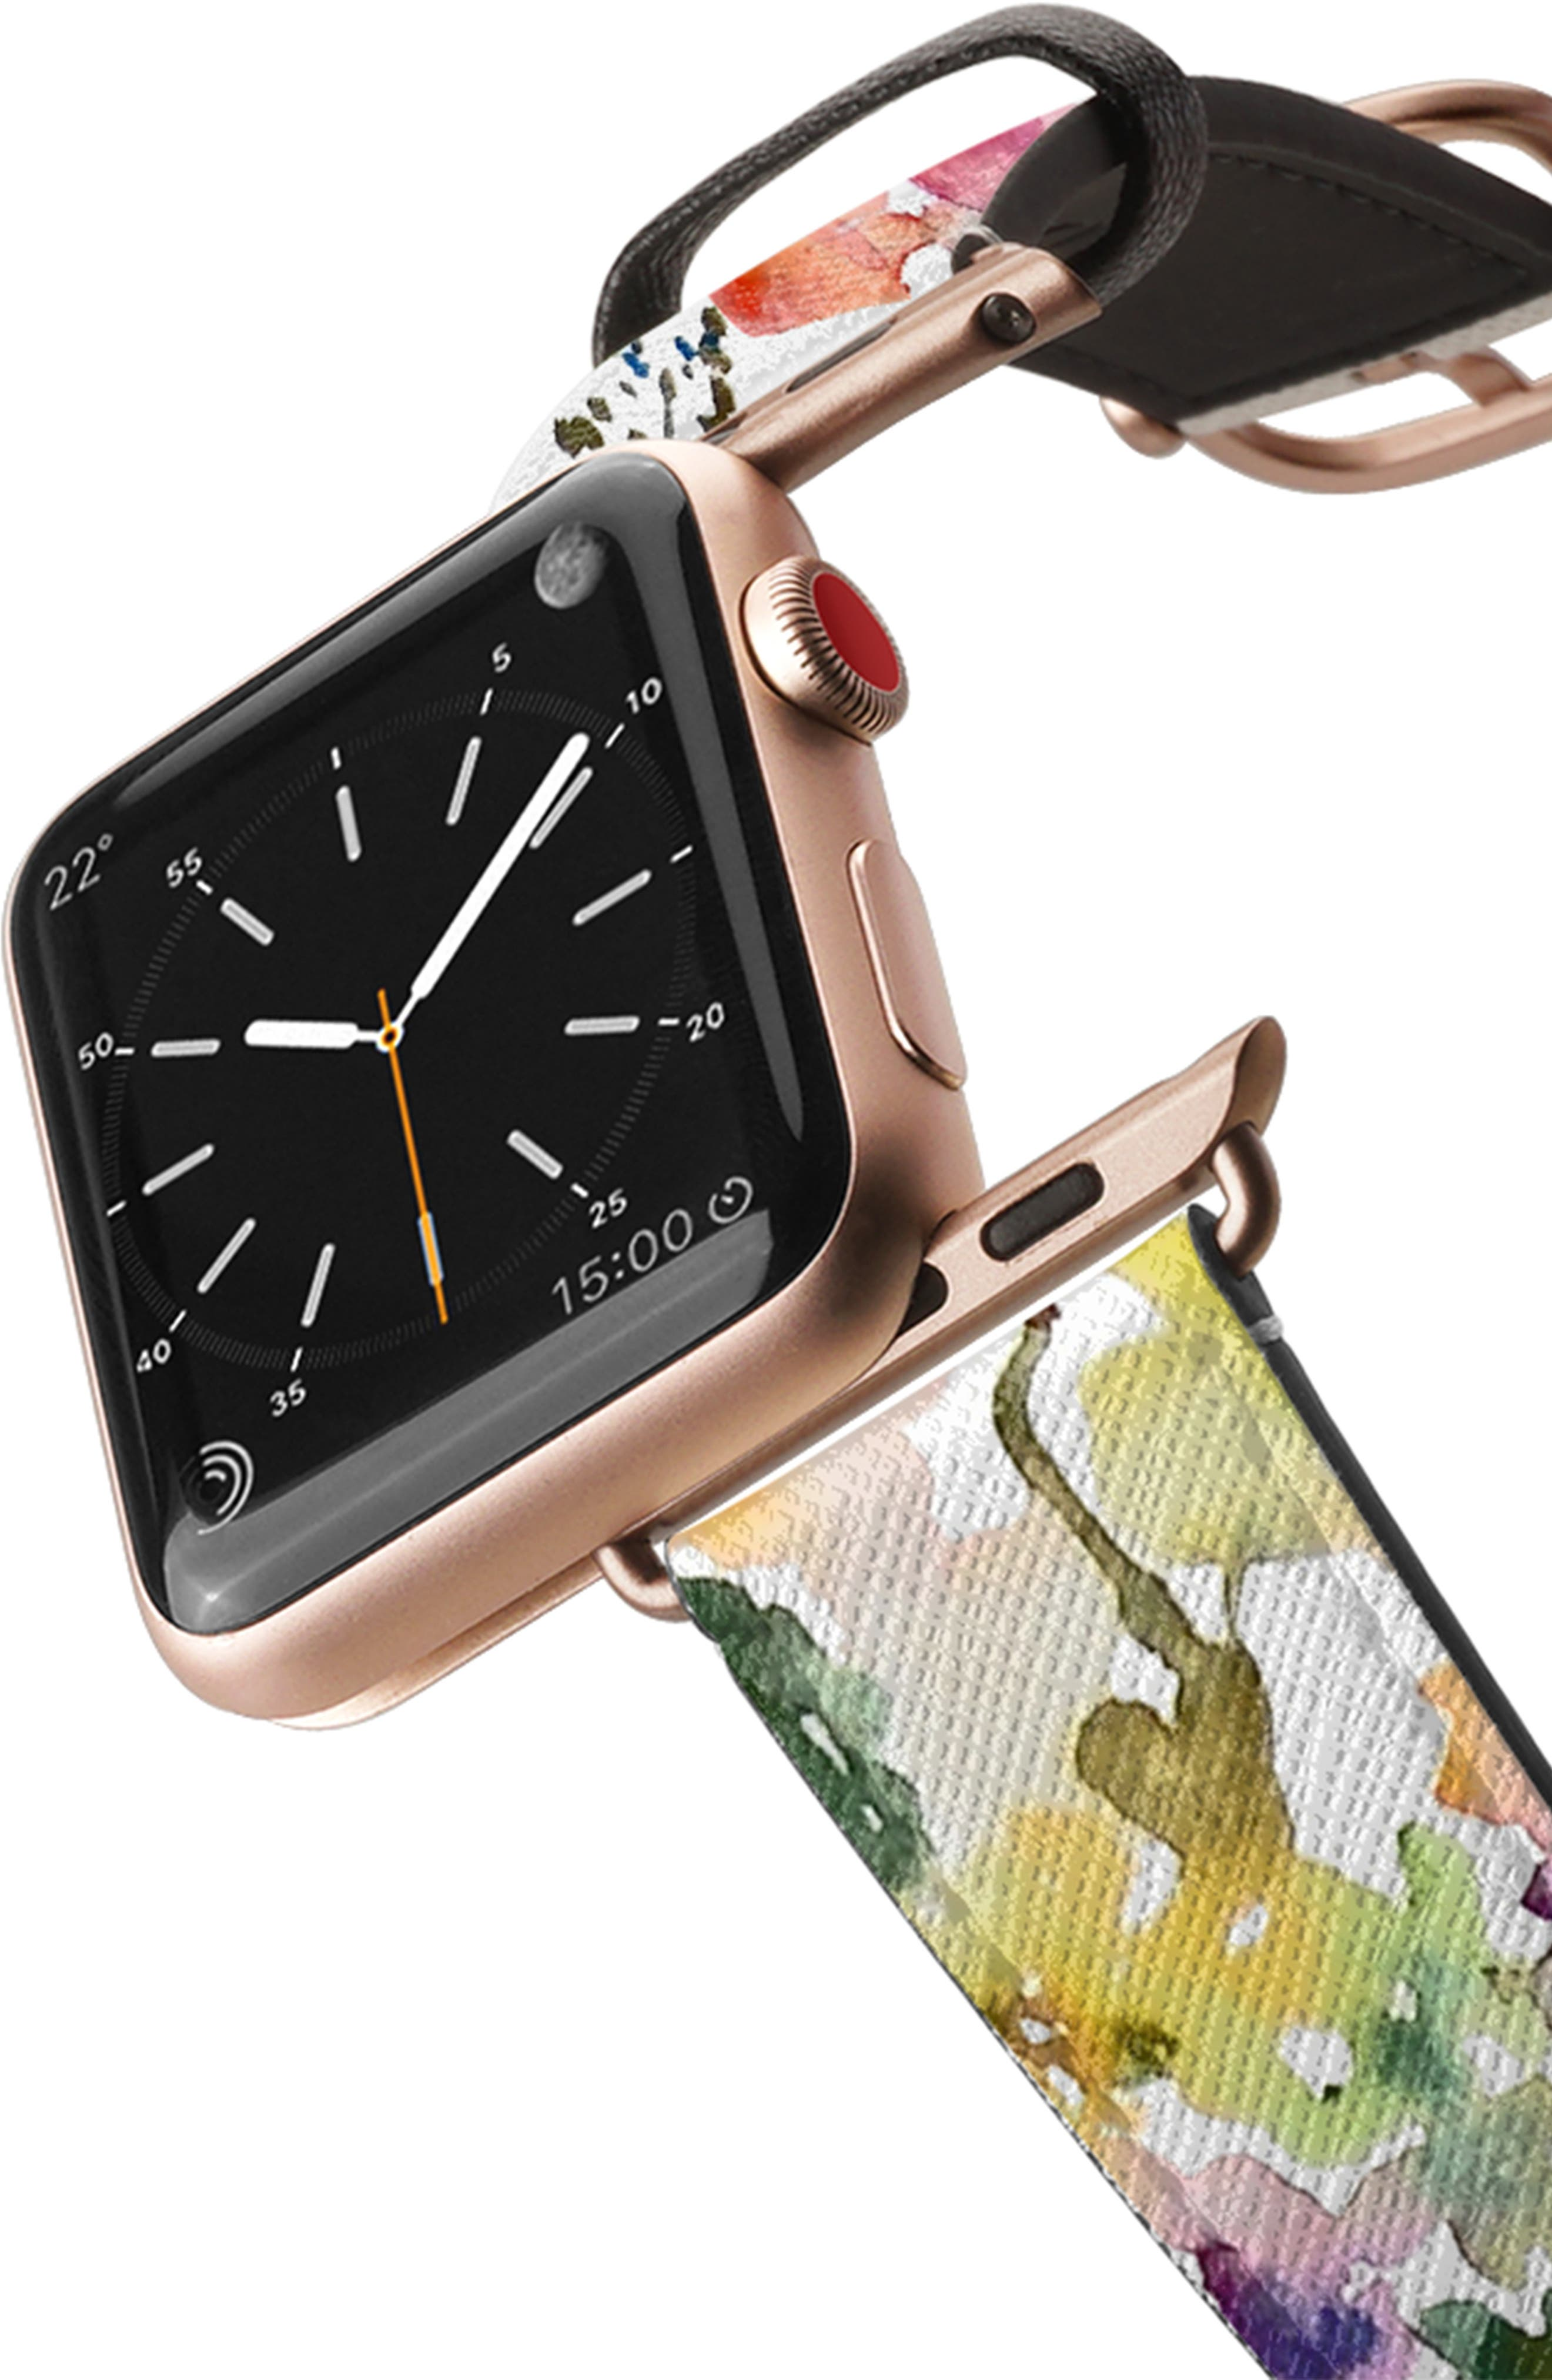 CASETIFY, Saffiano From the Garden Faux Leather Apple Watch Strap, Alternate thumbnail 2, color, WHITE/ ROSE GOLD